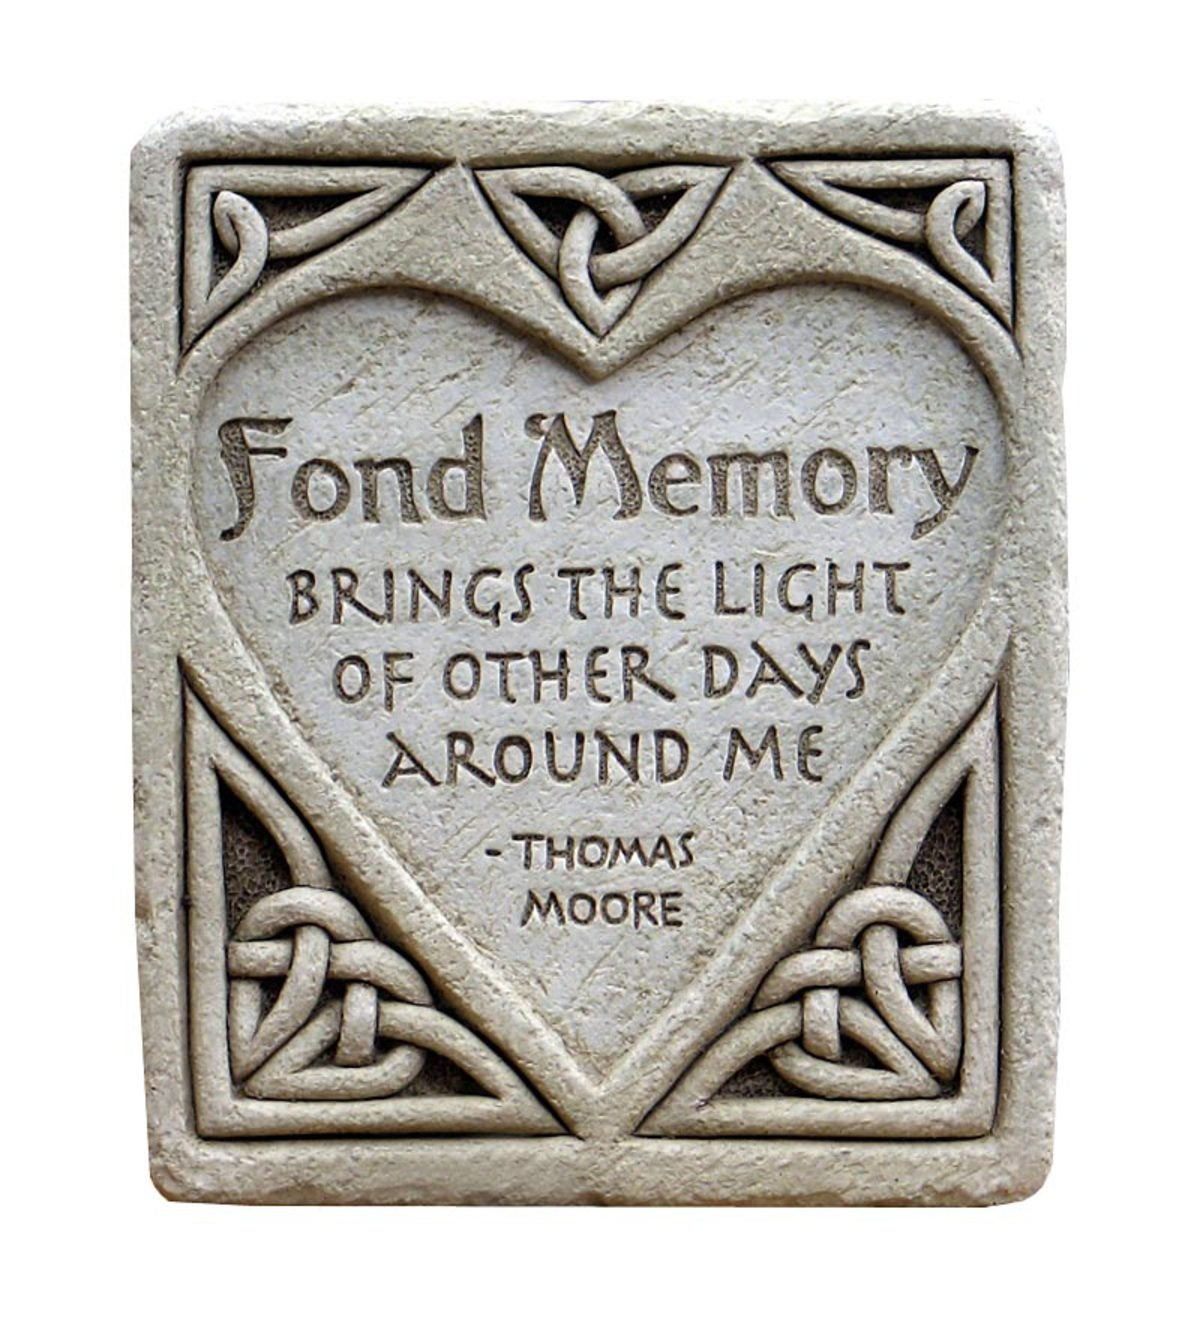 Fond Memory Hand Cast Stone Plaque by Carruth Studio